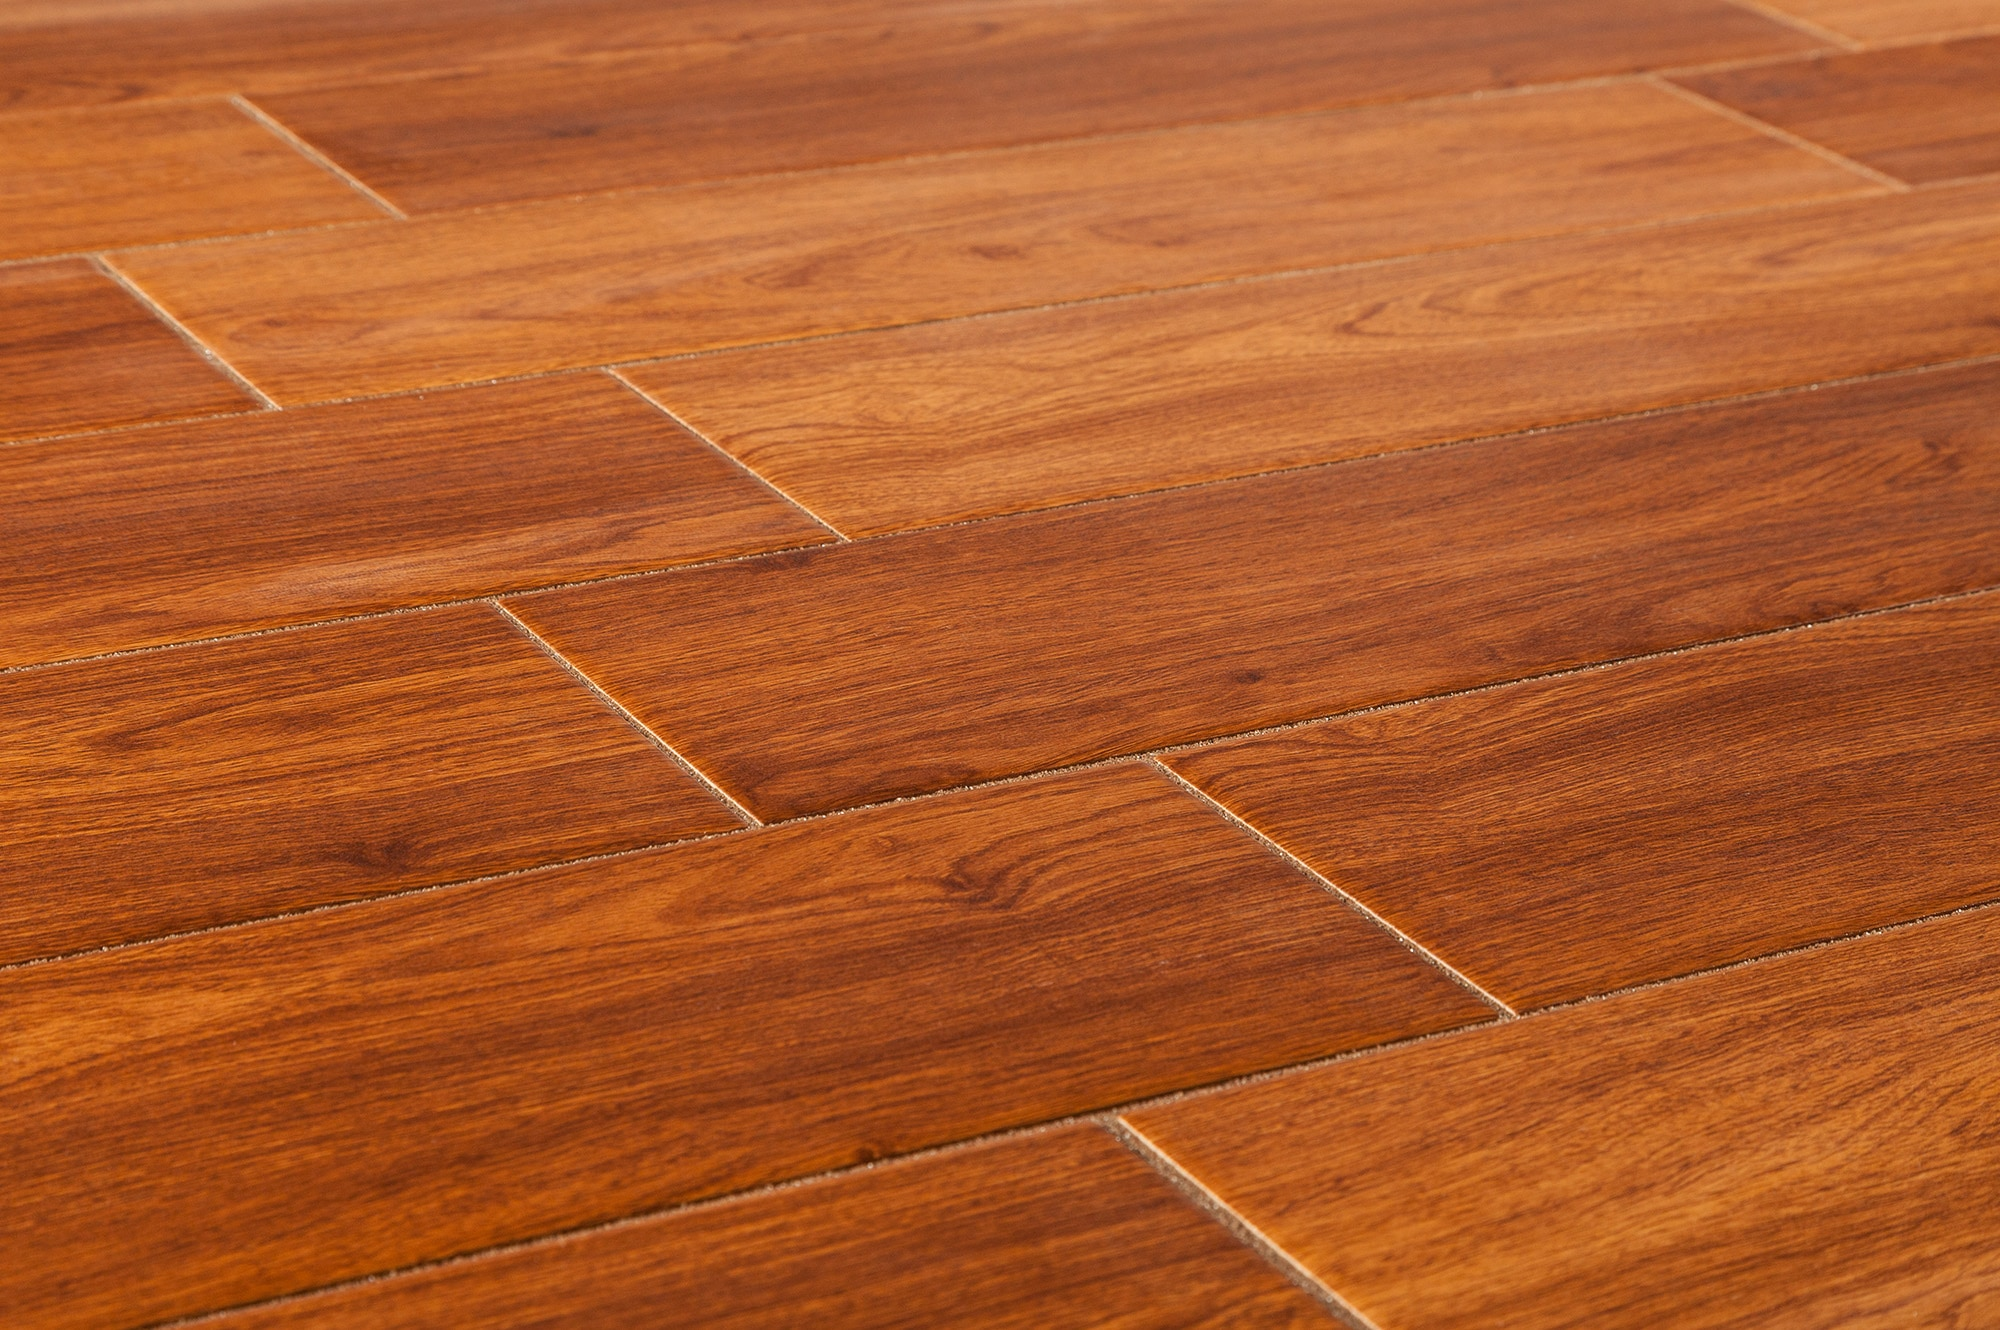 Salerno ceramic tile american wood series red oak 6 x24 for Tile and hardwood floor